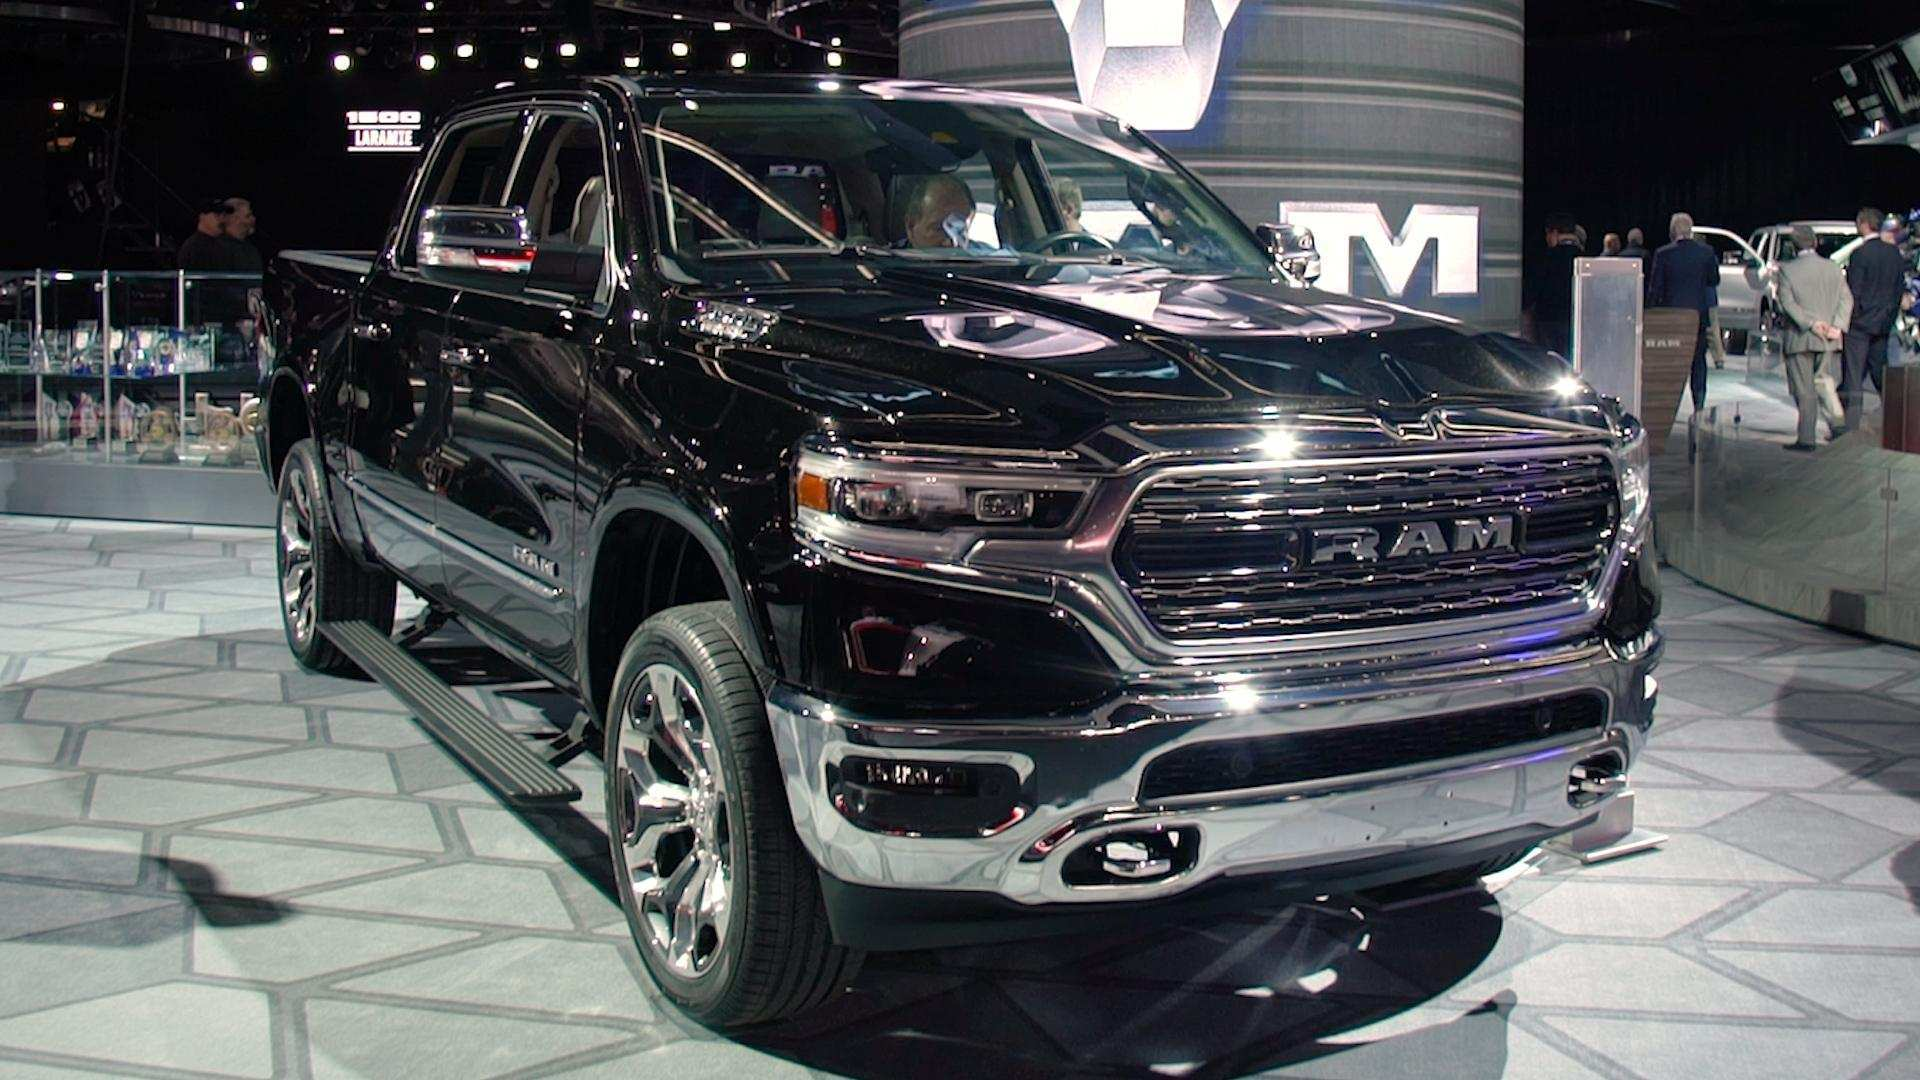 57 All New 2019 Dodge Ram 1500 Model